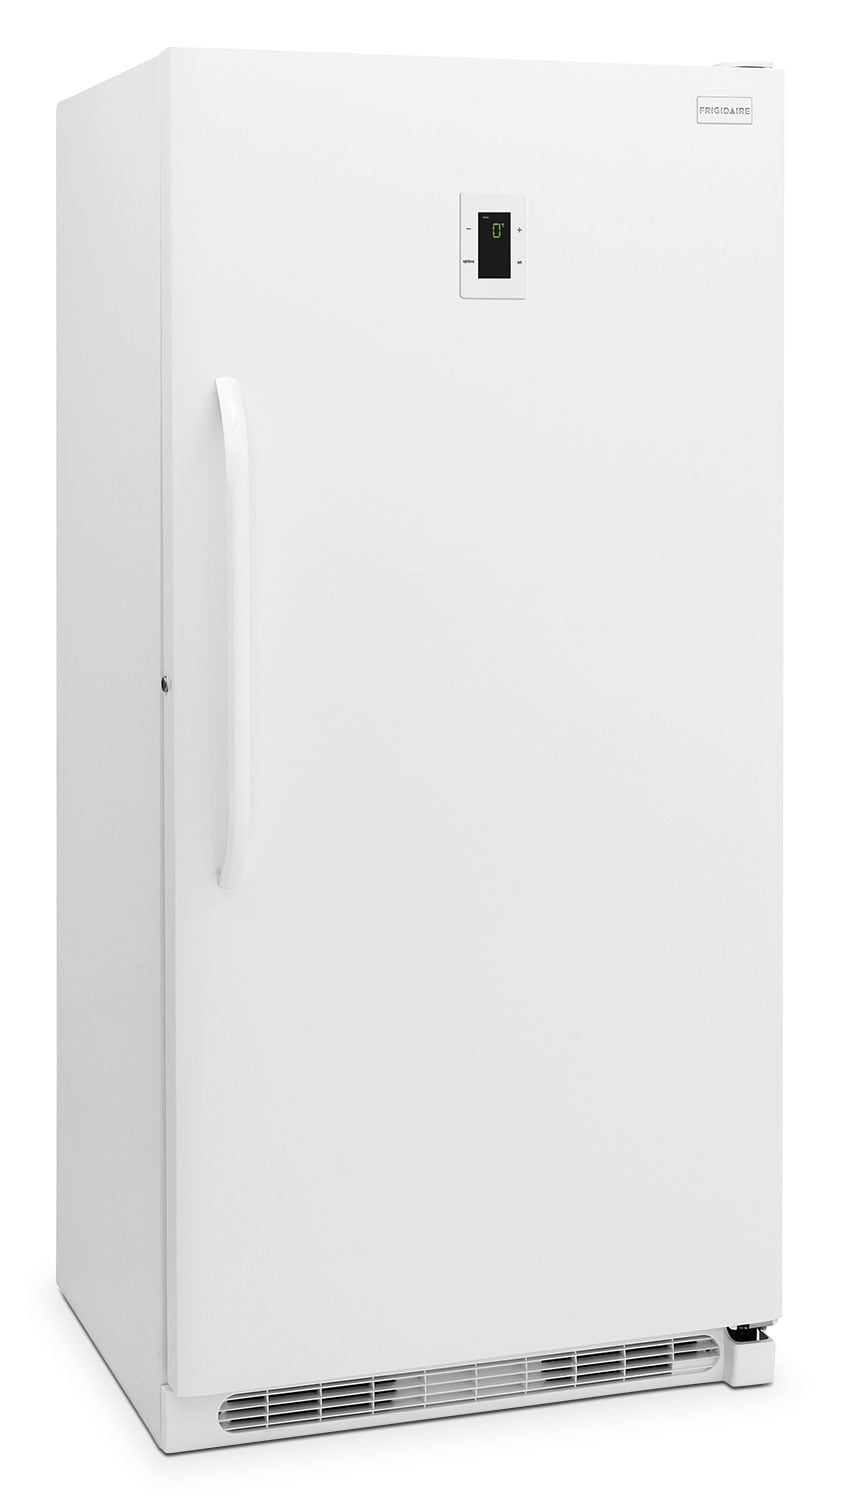 Refrigerators and Freezers - Frigidaire Upright Freezer (20.2 Cu. Ft.) FFFH21F6QW